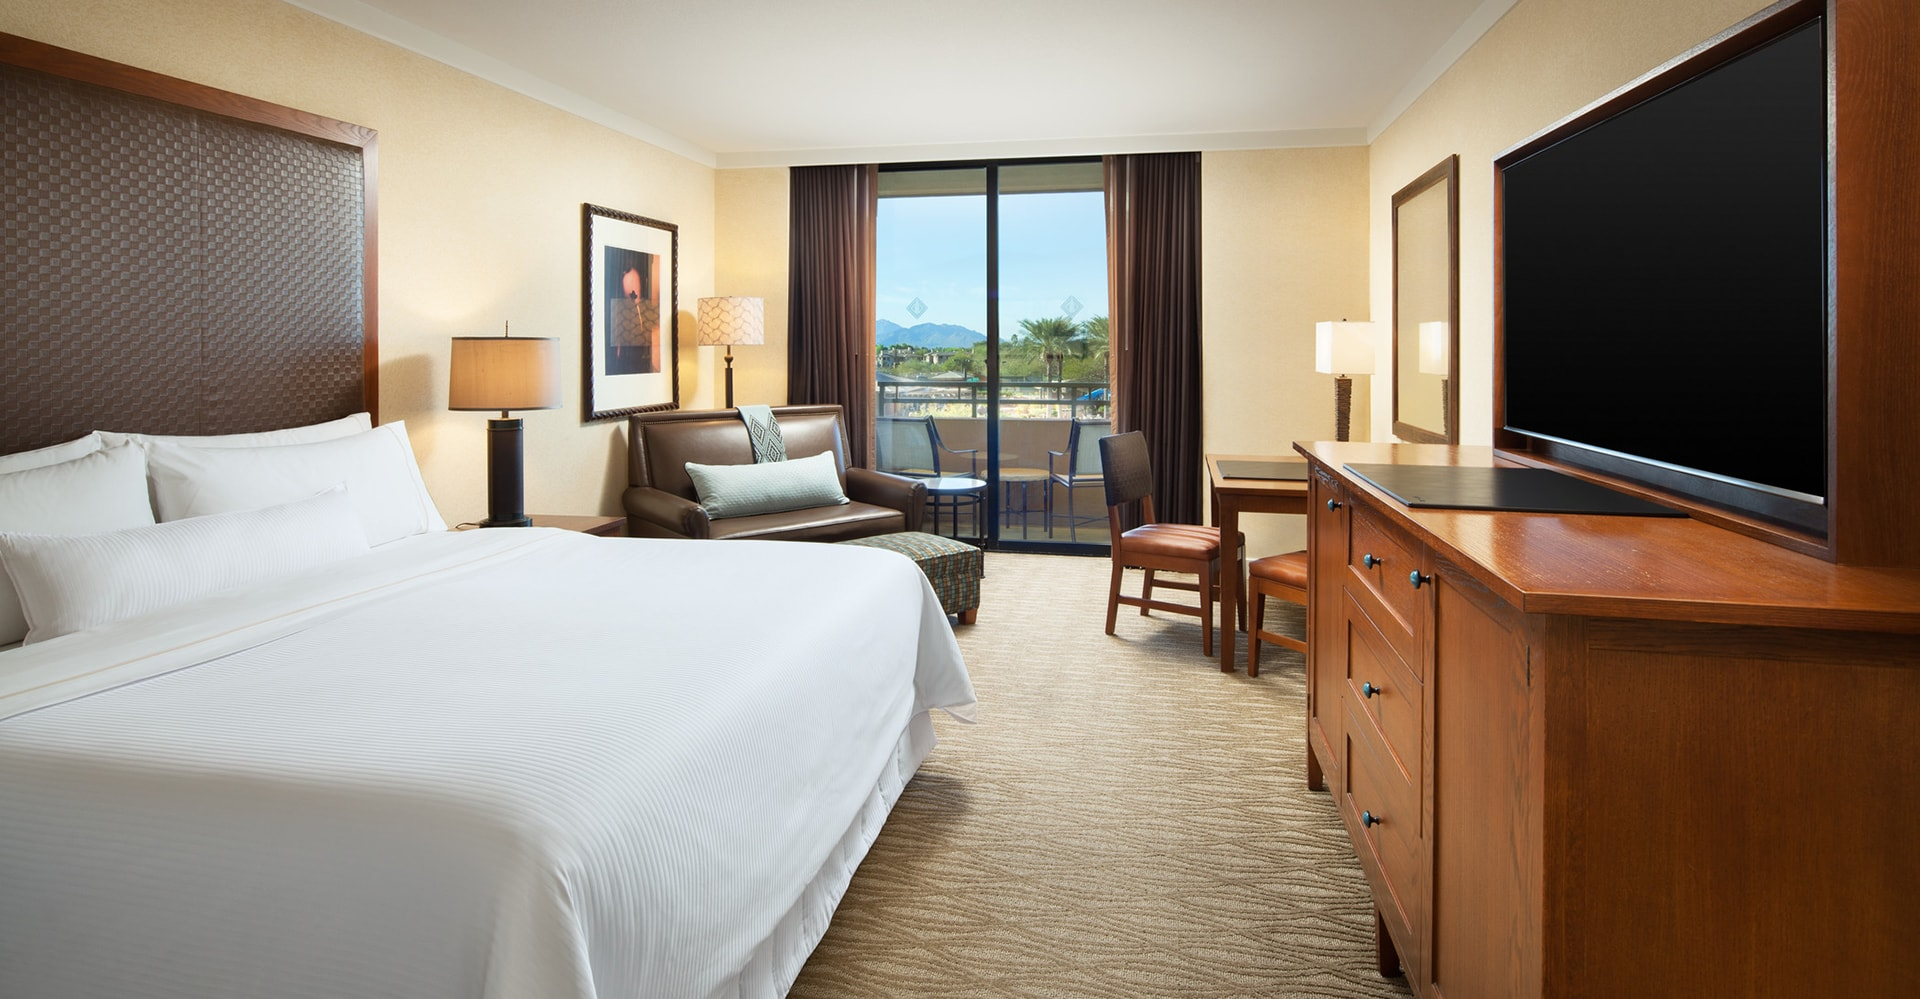 Kierland Westin Resort Guestrooms In Scottsdale Arizona